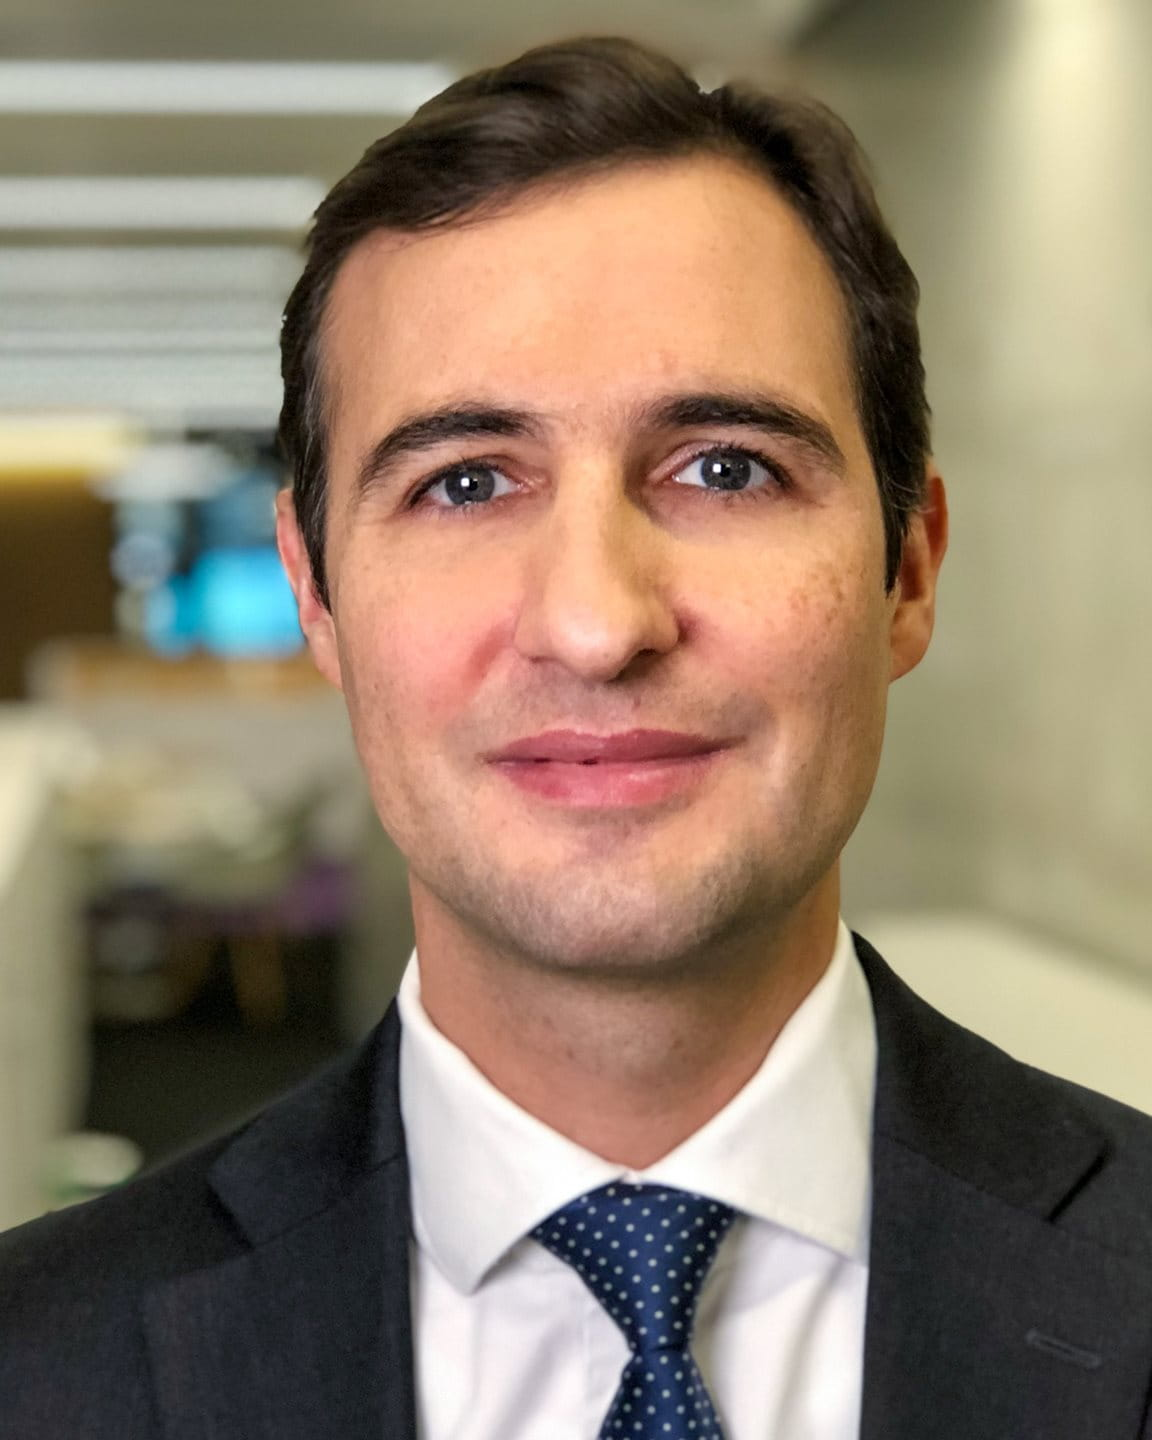 Andreas Henke, Chief Financial Officer